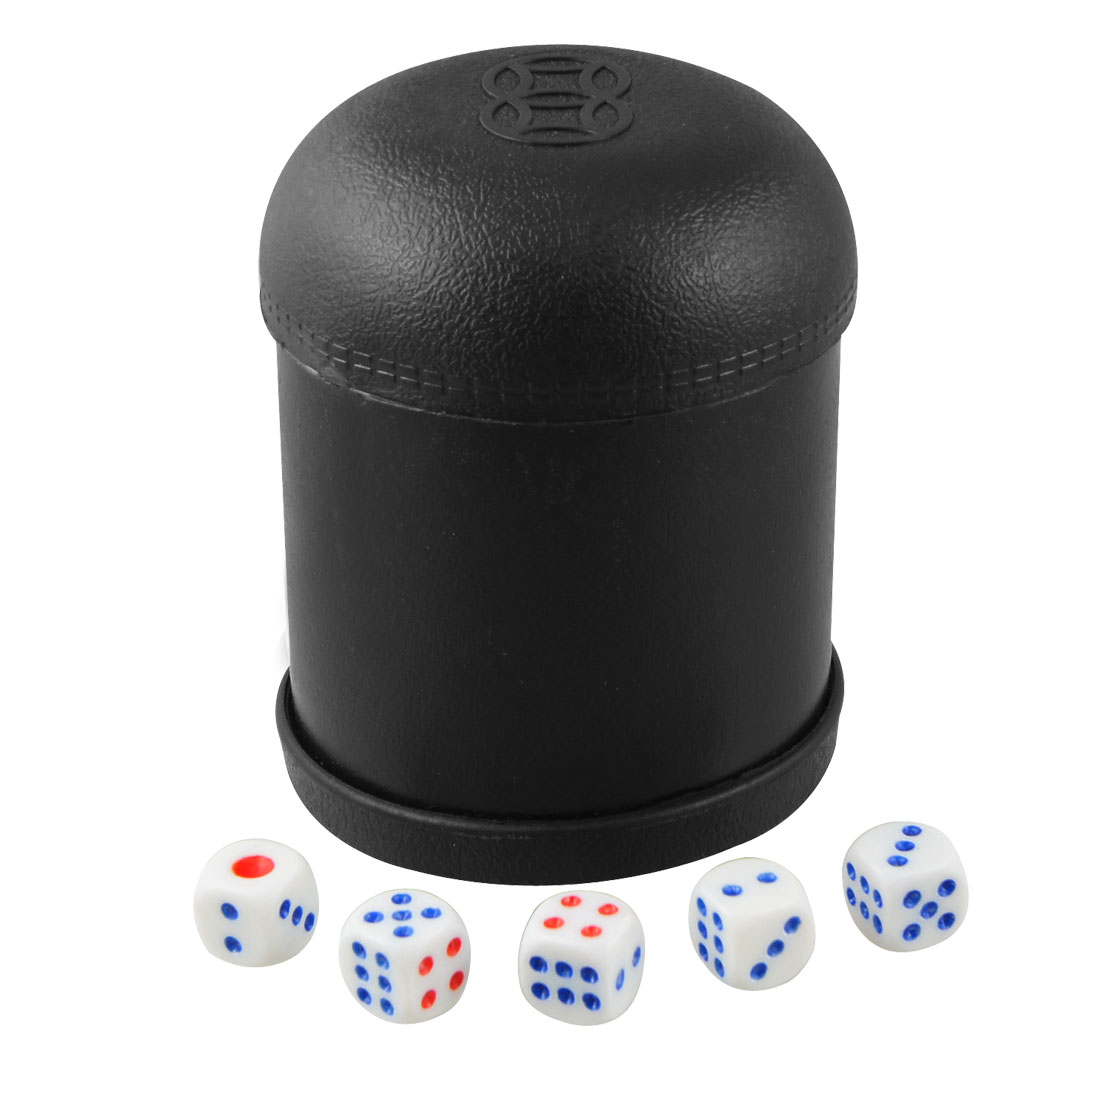 Parties Game Black Plastic Shaker Cup w 5 Pcs Red Blue Dot Dice